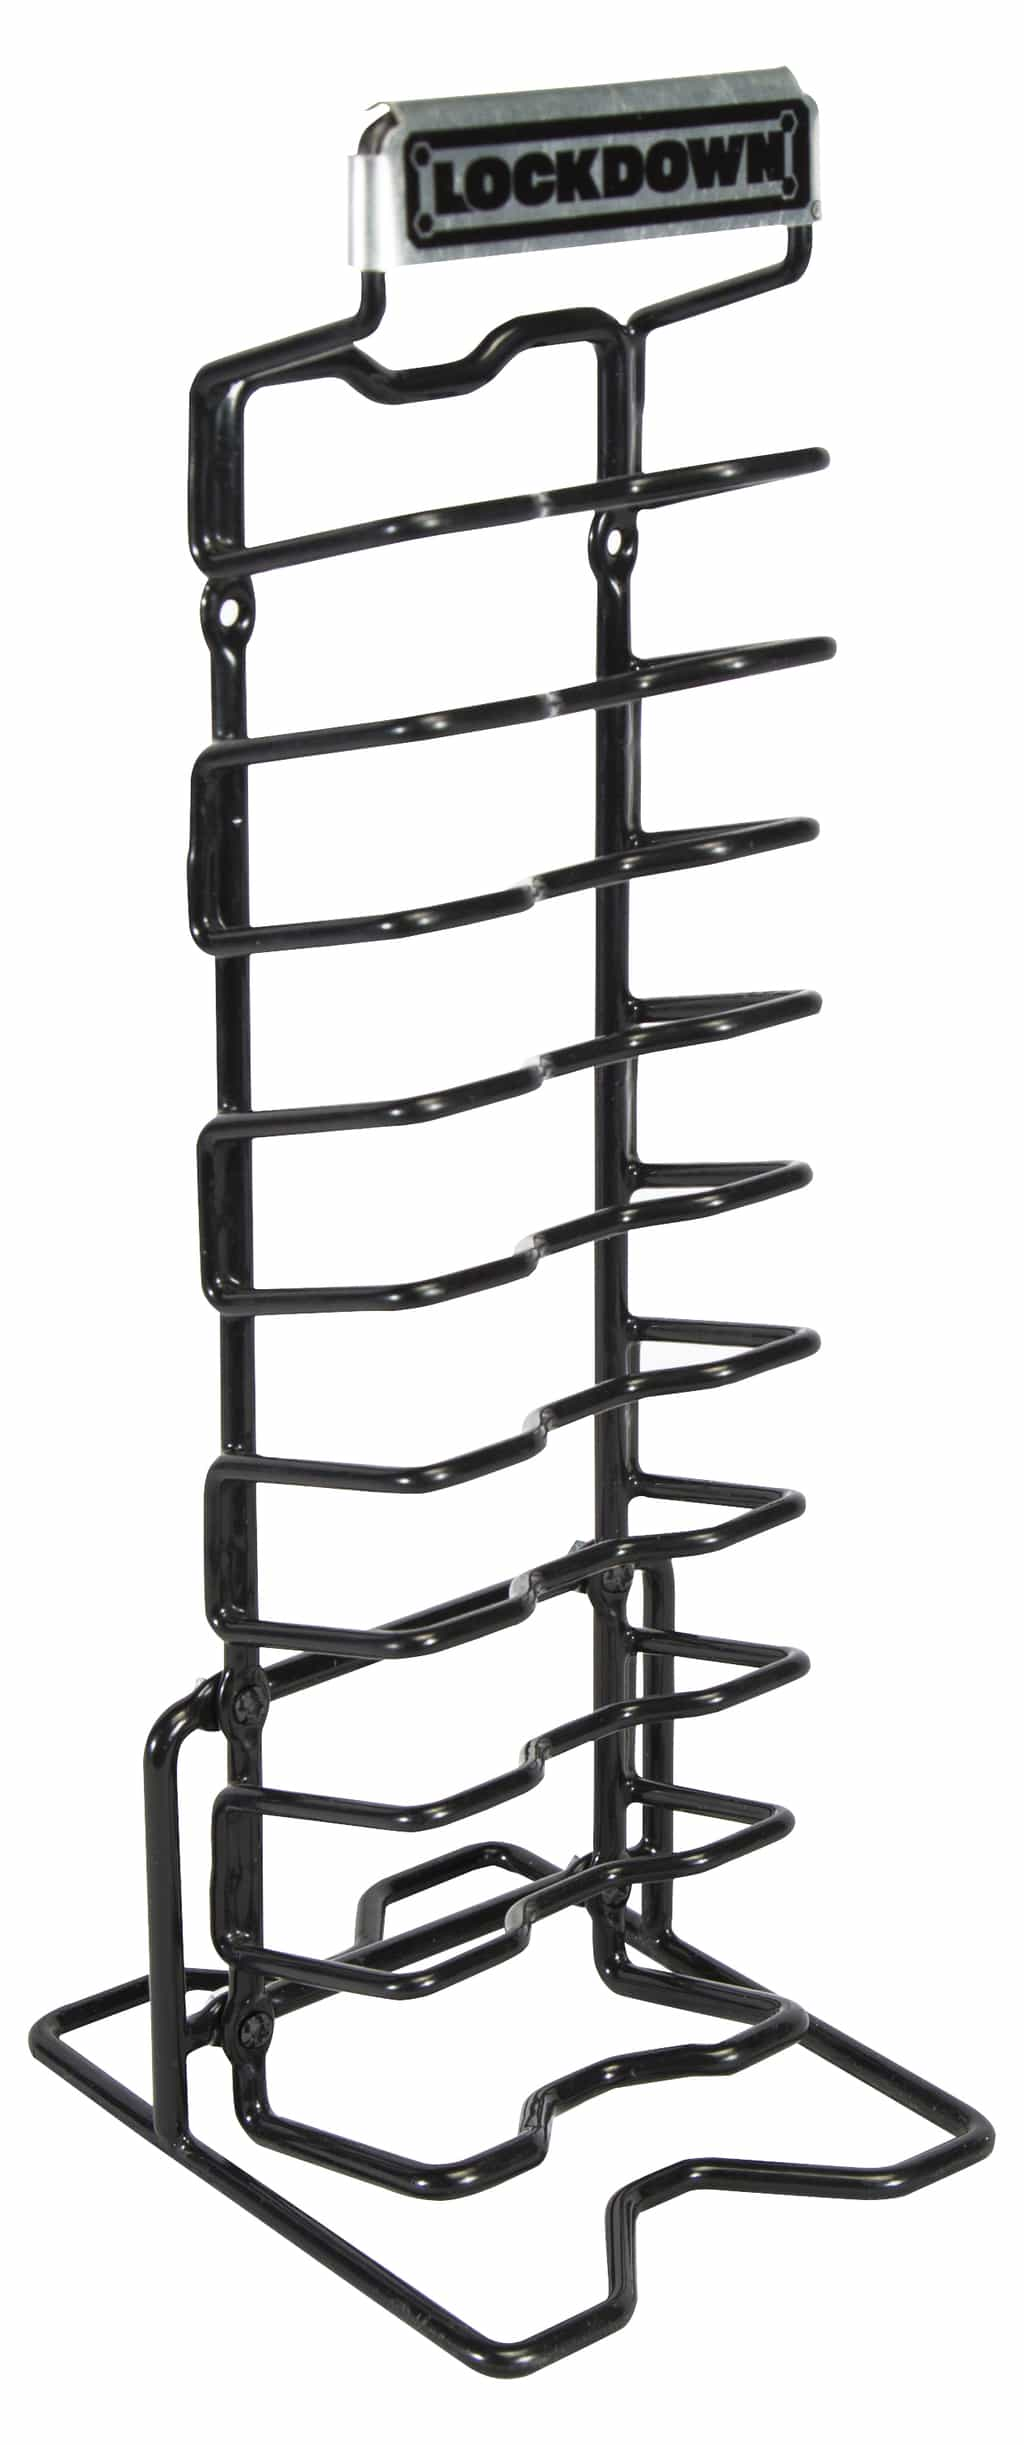 AR-15 Magazine Rack - 222972 Lockdown Empty Mag Rack FRONT1